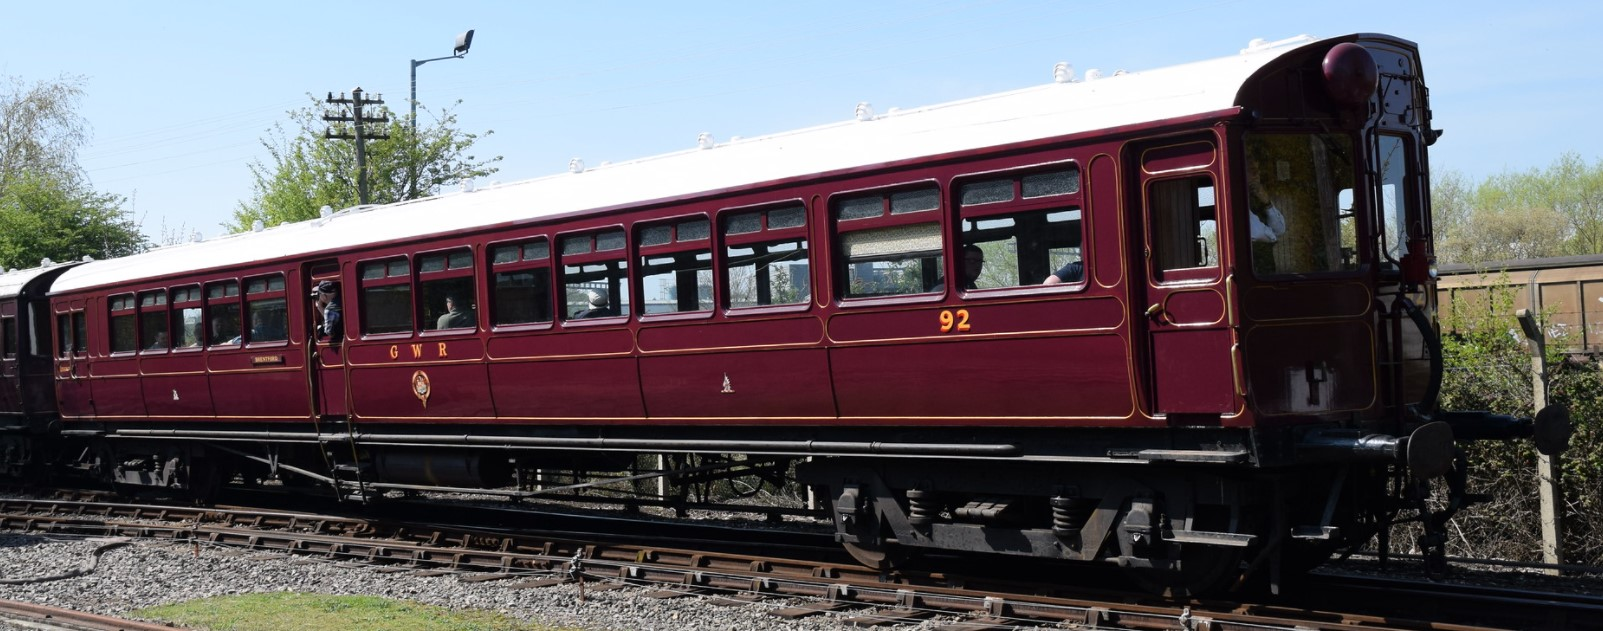 Diagram U autocoach 92 at the Didcot Railway Centre in April 2019. ©Hugh Llewelyn